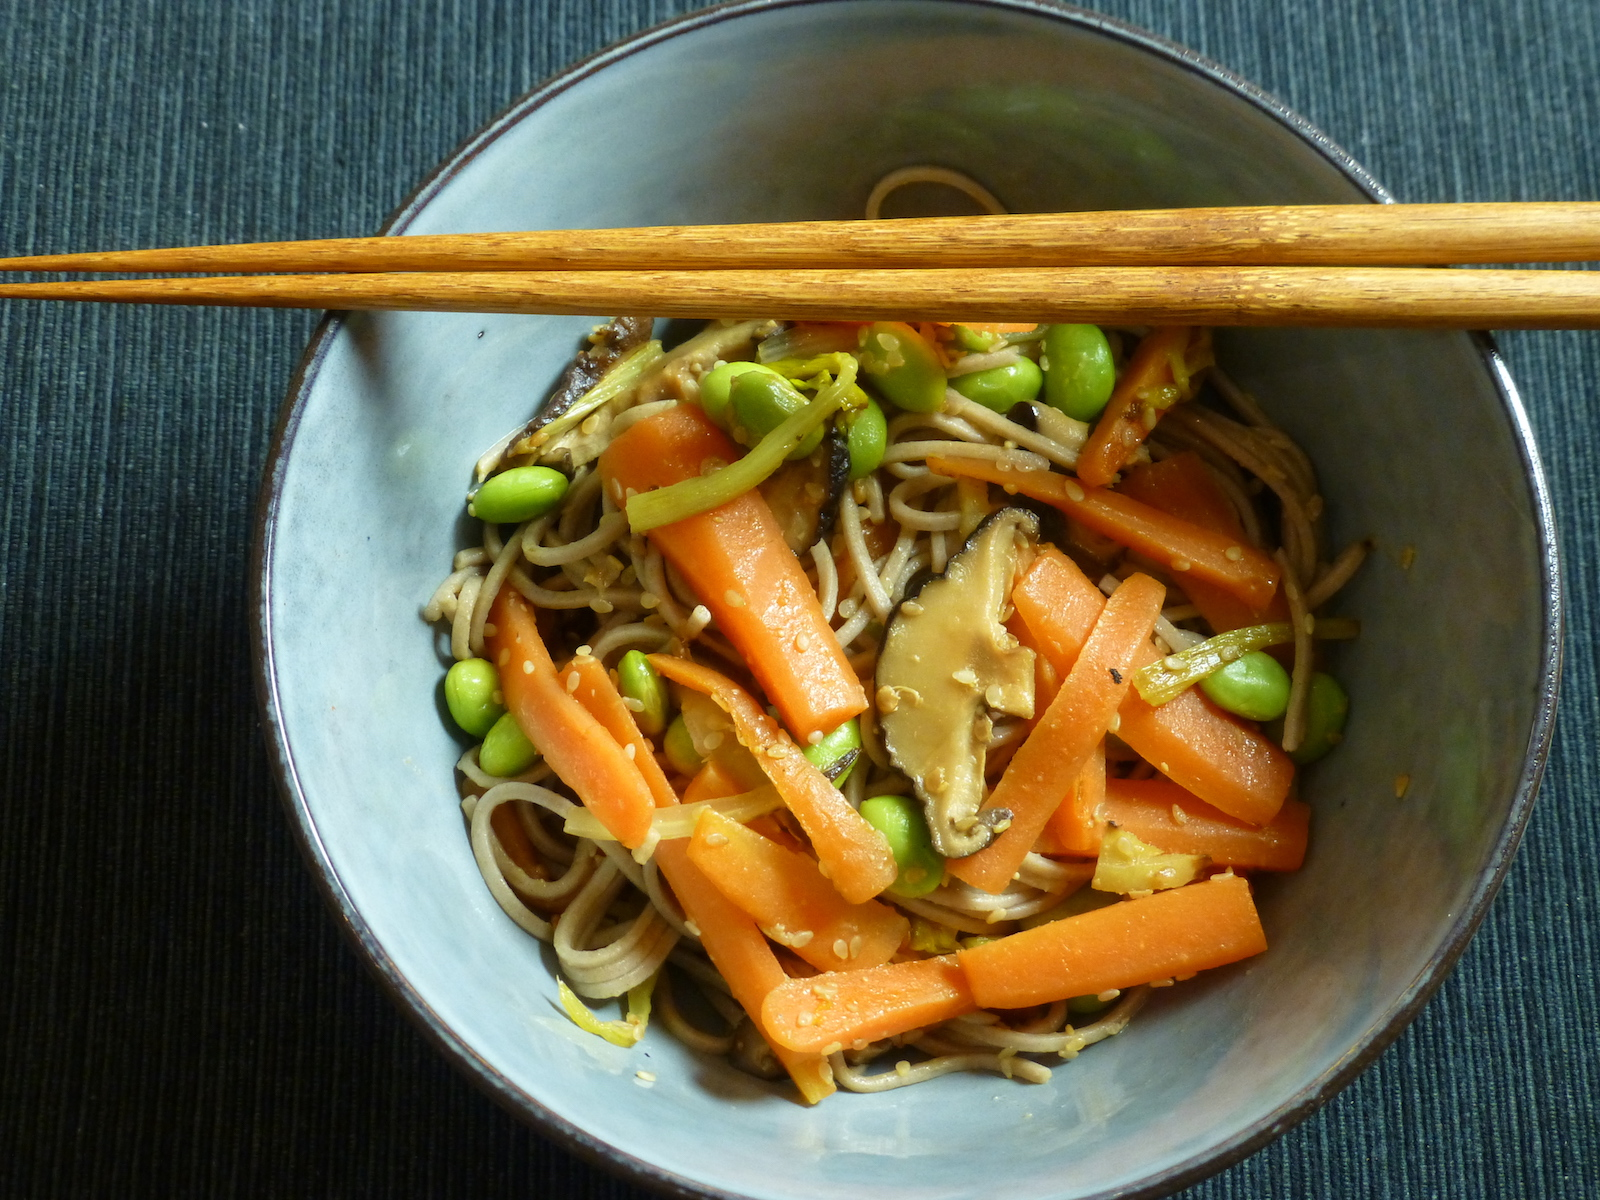 Yakisoba with carrots and edamame